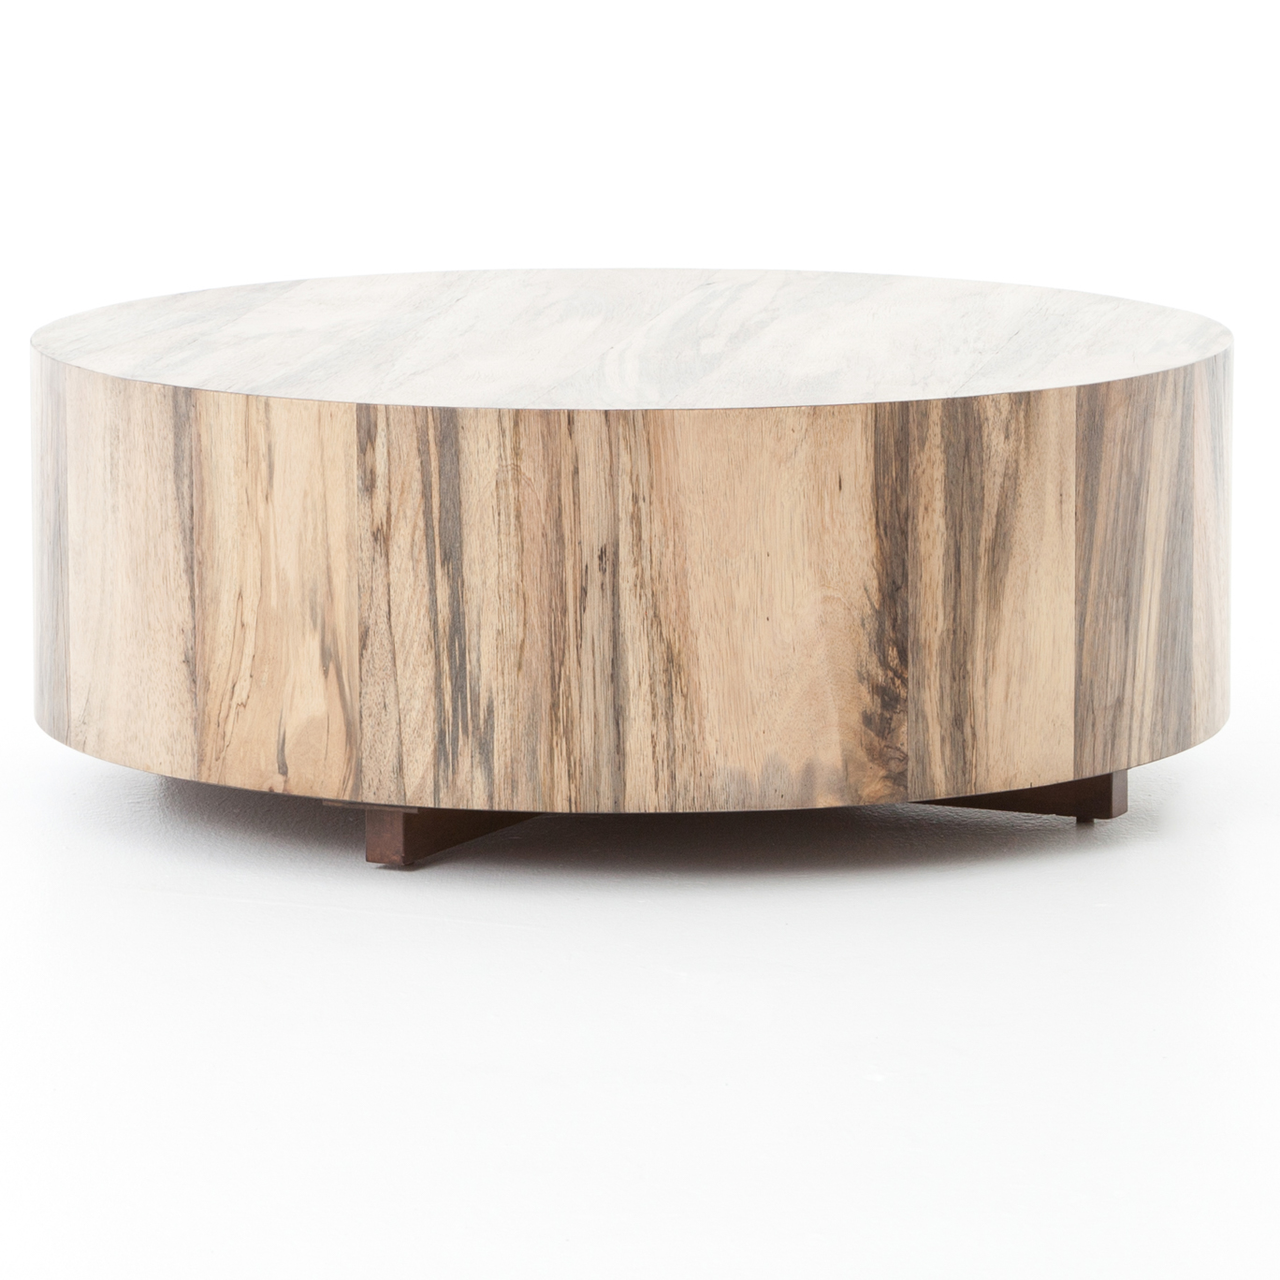 Hudson Spalted Rustic Wood Block Round Coffee Table Round Wood Coffee Table Coffee Table Coffee Table Wood